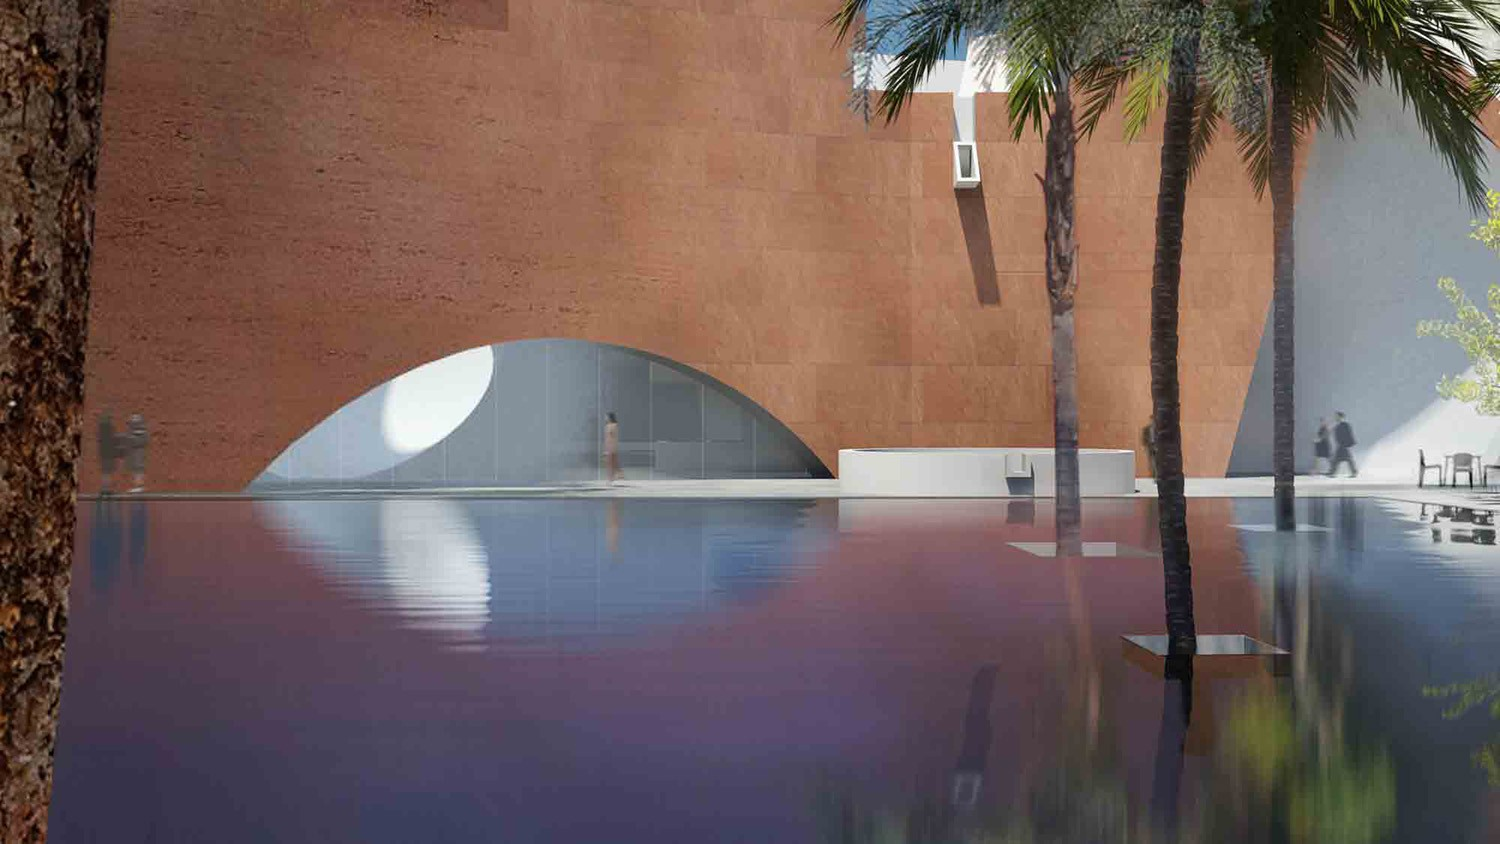 https://stevenholl.sfo2.digitaloceanspaces.com/uploads/projects/project-images/StevenHollArchitects_Mumbai_SHA_01_Pool view_WH.jpg